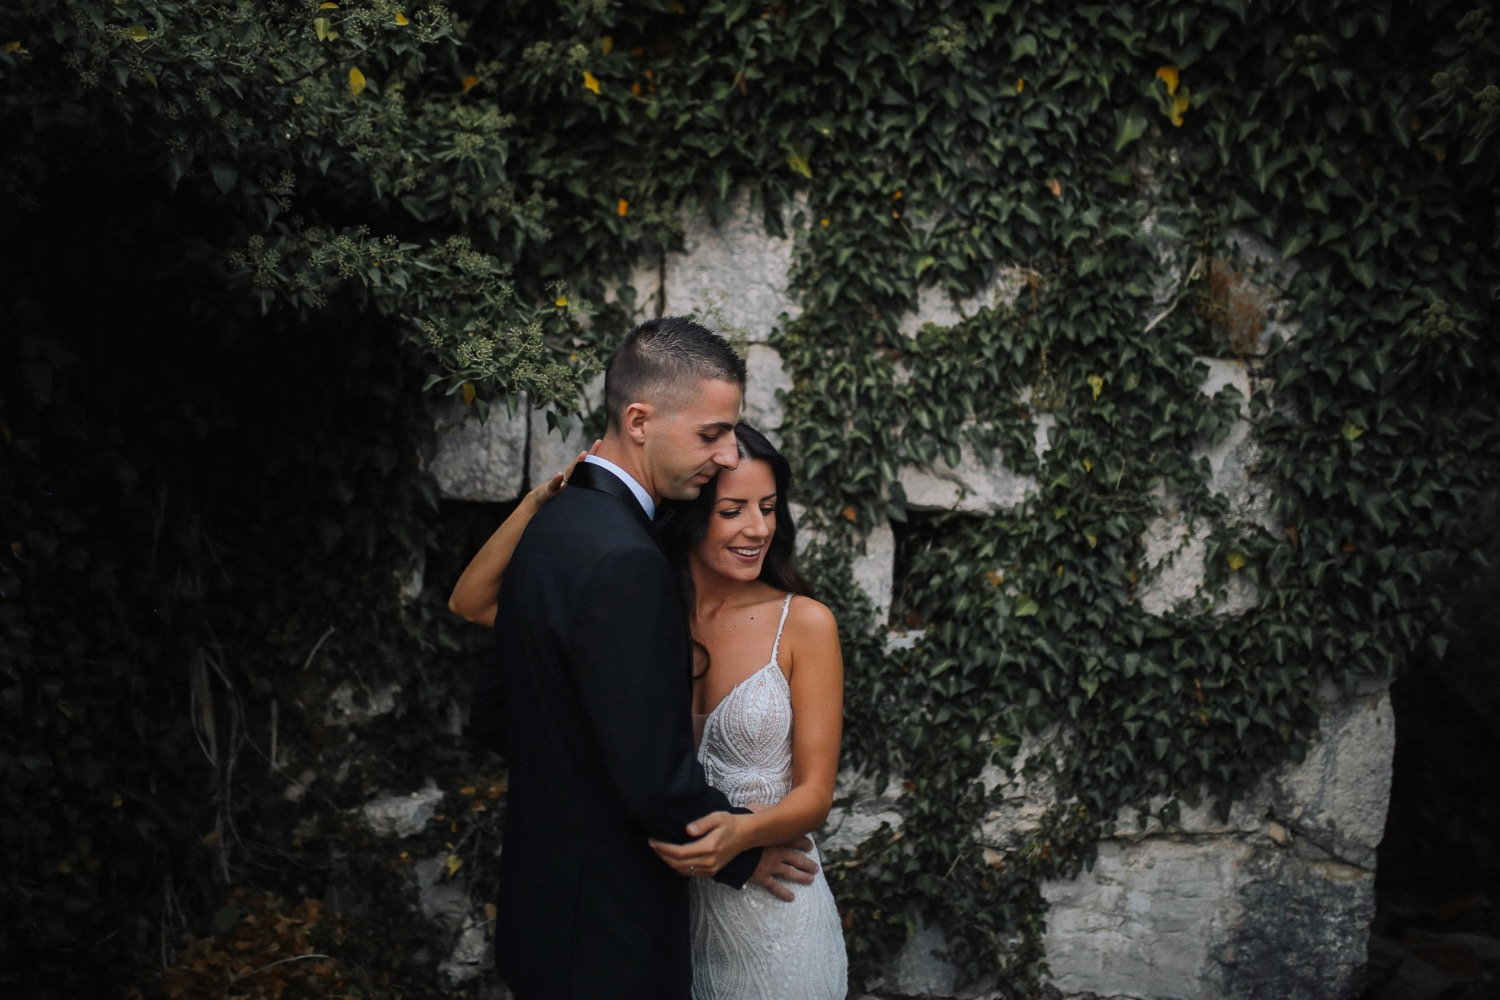 Best moments of 2019 love and ventures 56 | Croatia Elopement Photographer and Videographer